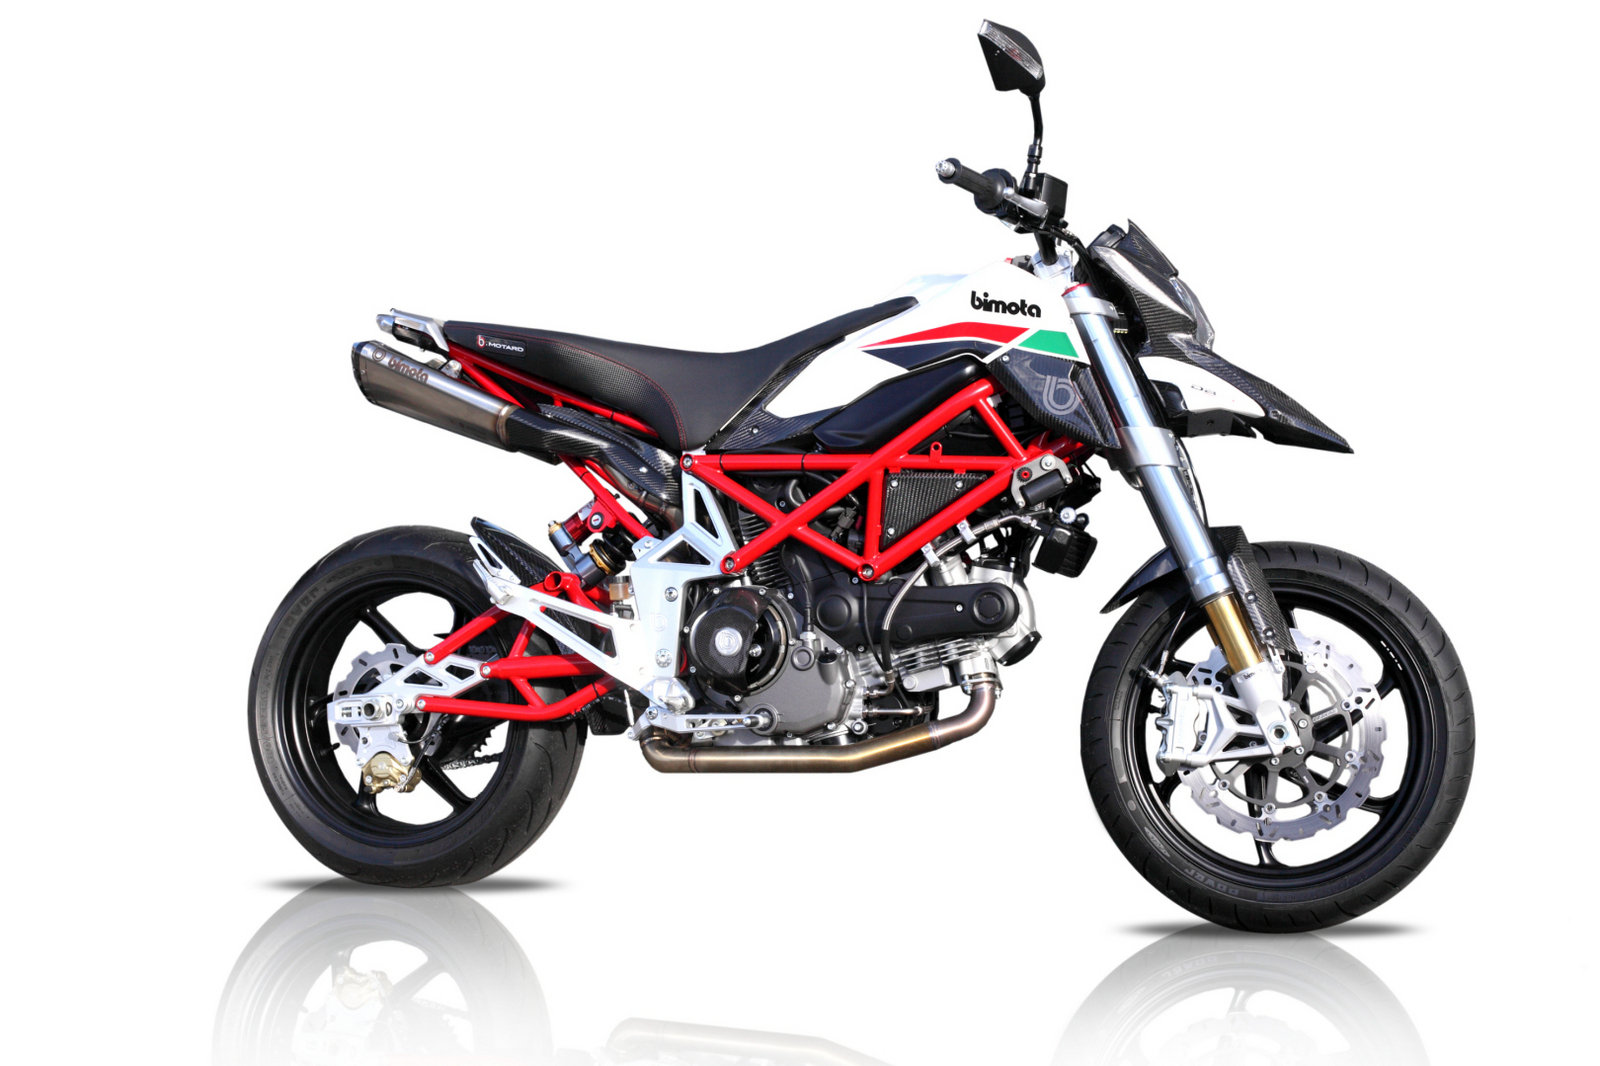 2013 Bimota DB10 Bimotard - Picture 494817 | motorcycle ...